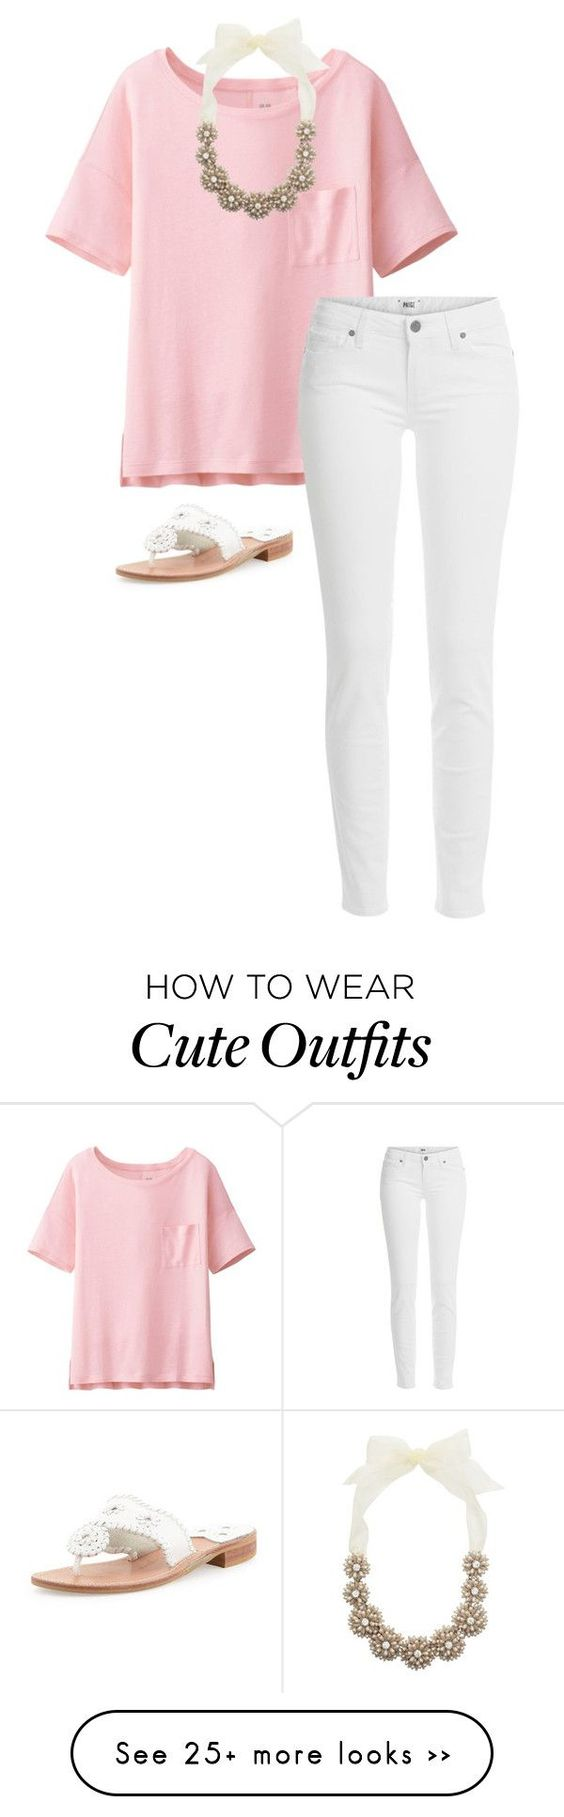 """cute outfit"" by sassy-and-southern on Polyvore featuring Uniqlo, Kate Spade, Paige Denim and Jack Rogers:"